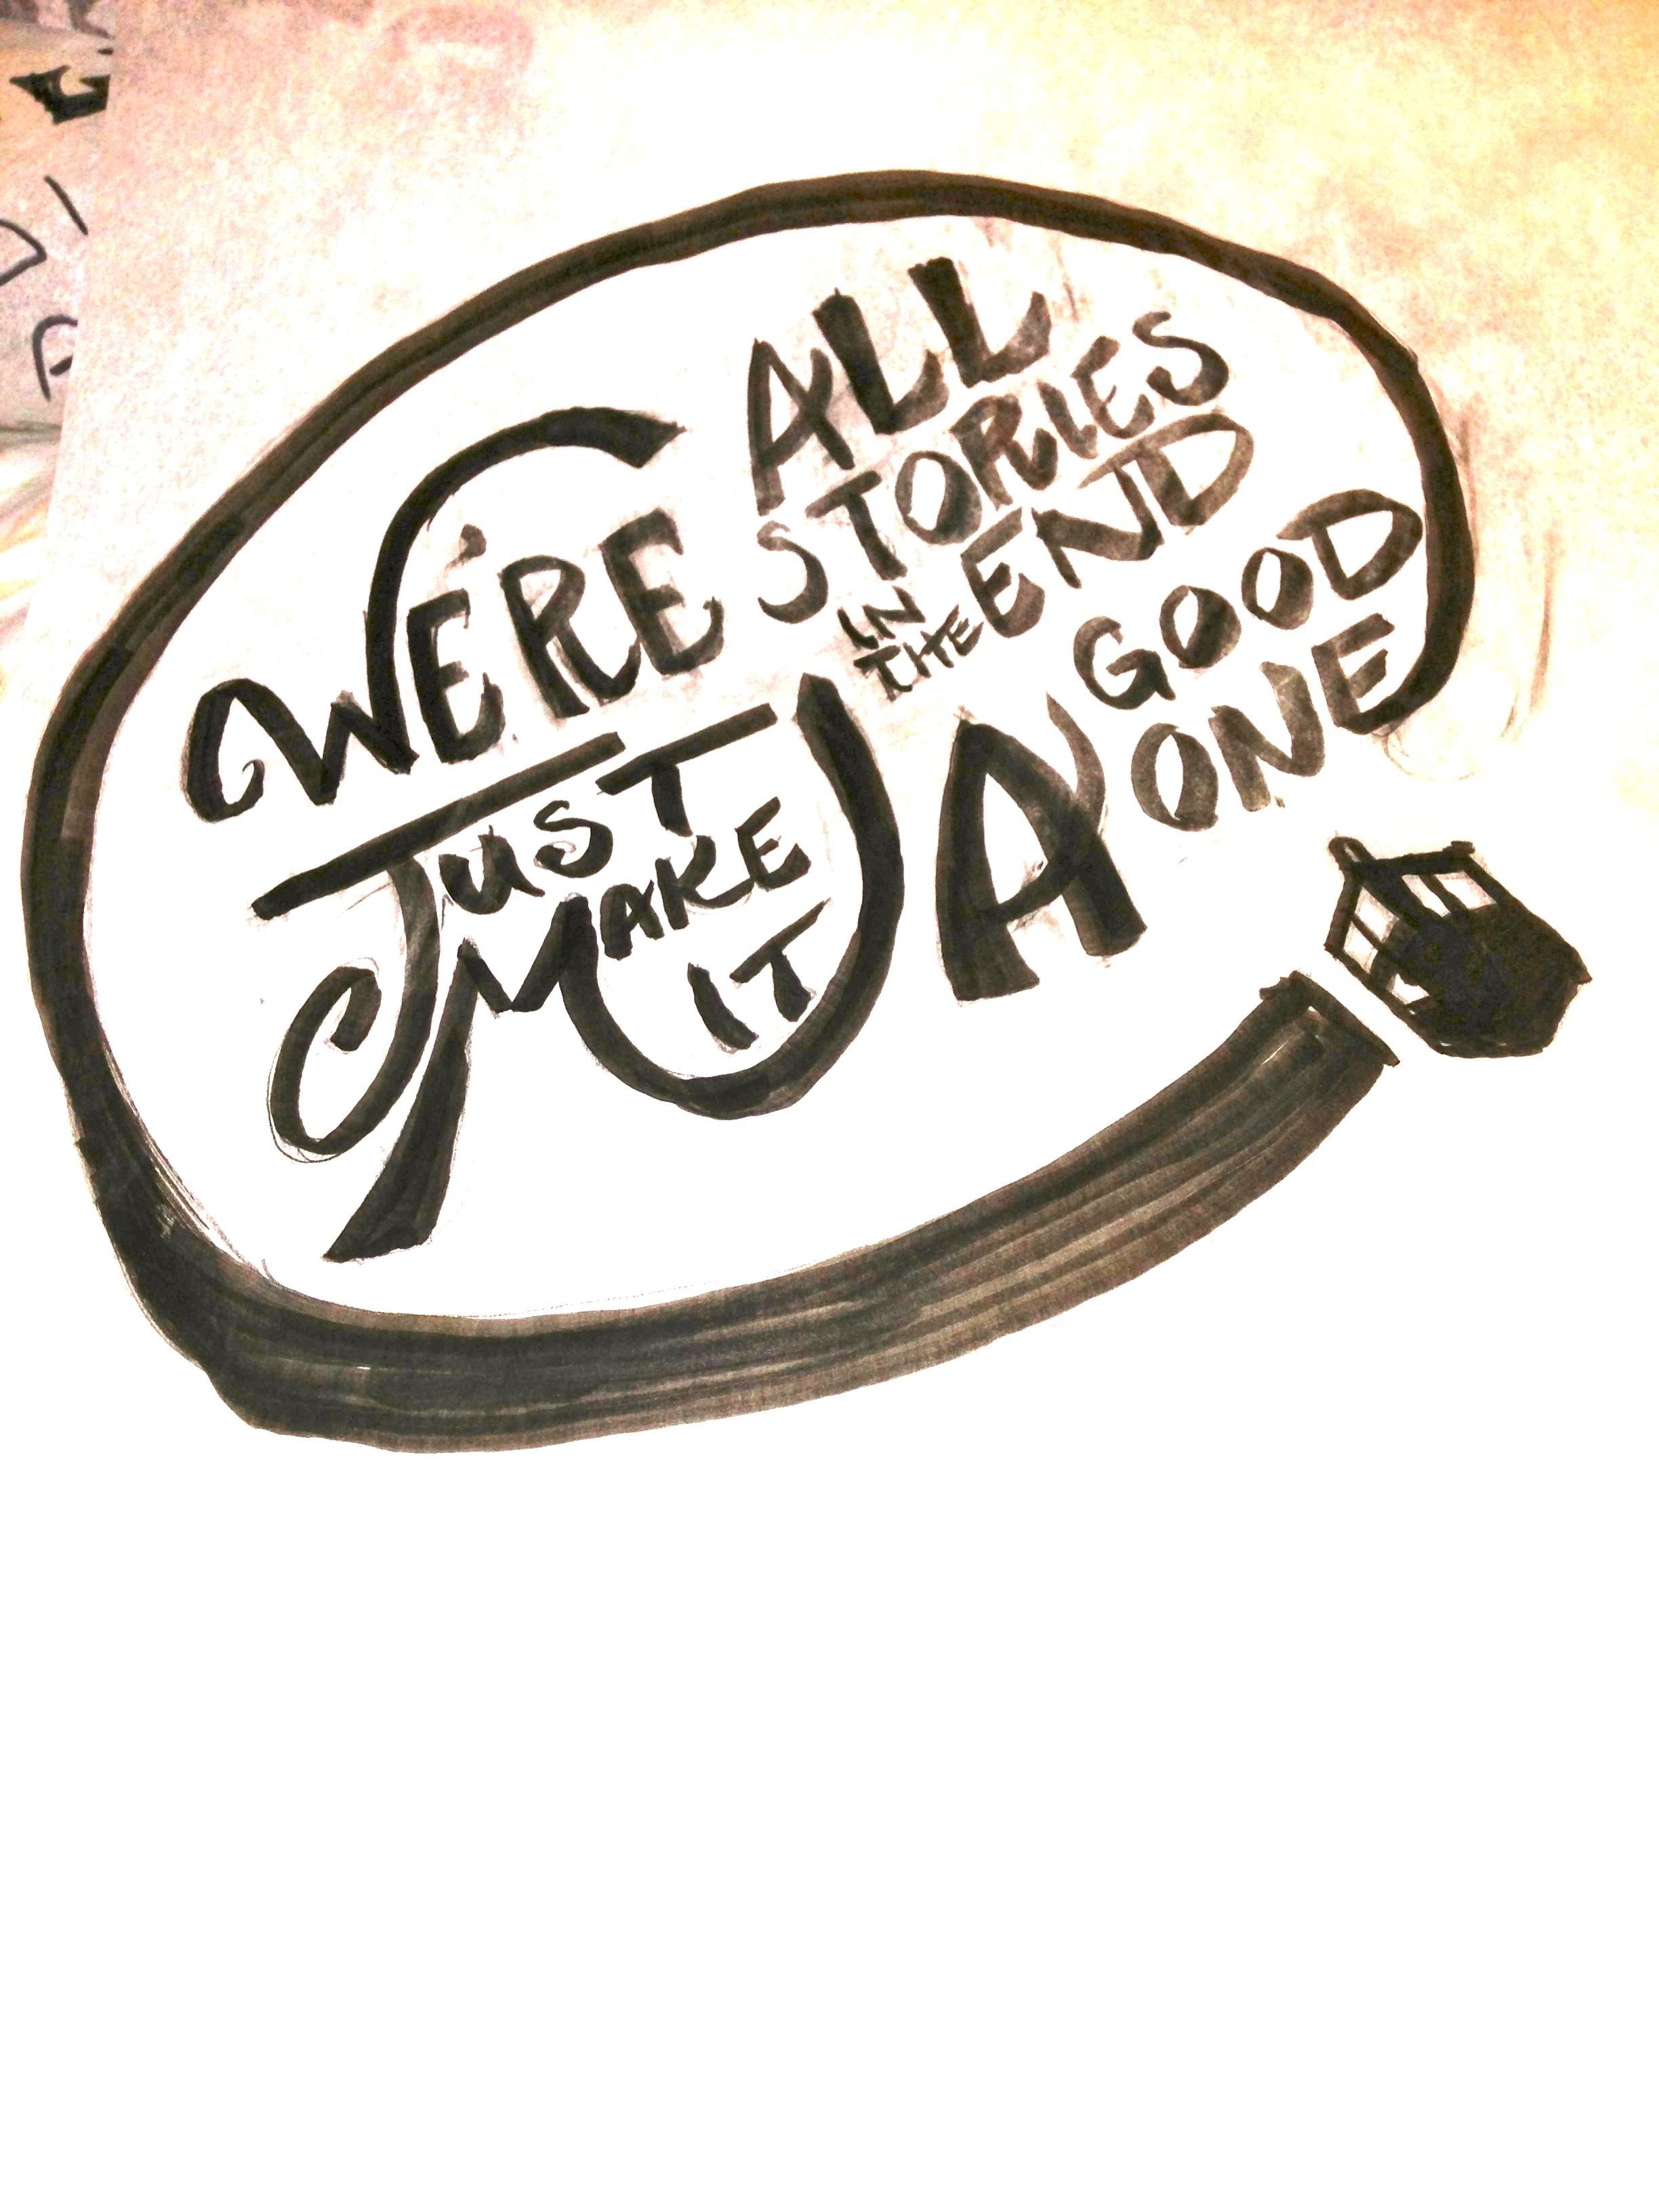 We're all stories in the end. Make it a good one eh? - image 4 - student project